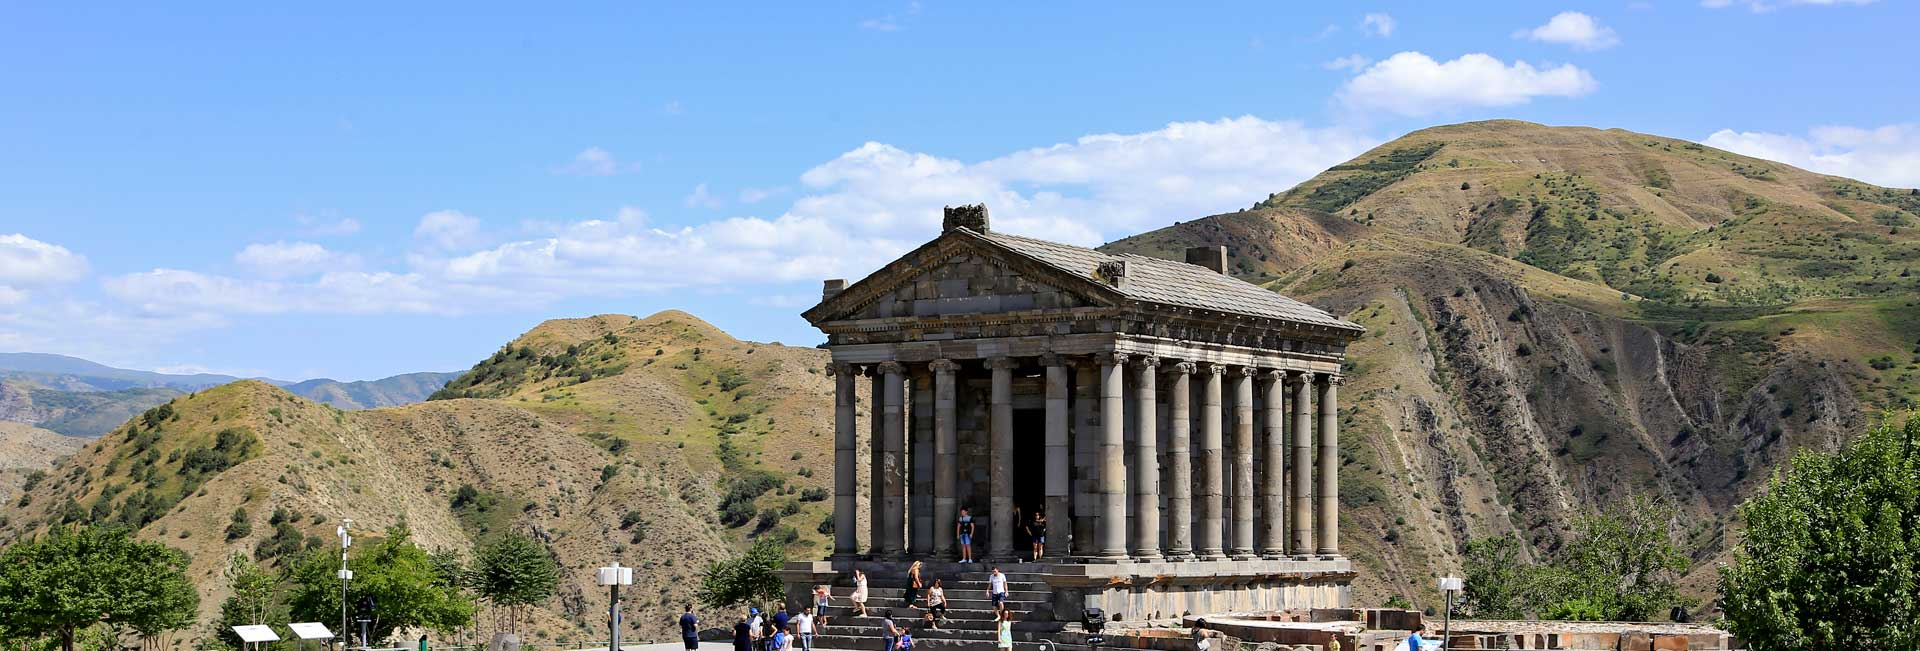 Temple of Garni (Armenia). Photo credit: Ann Schneider